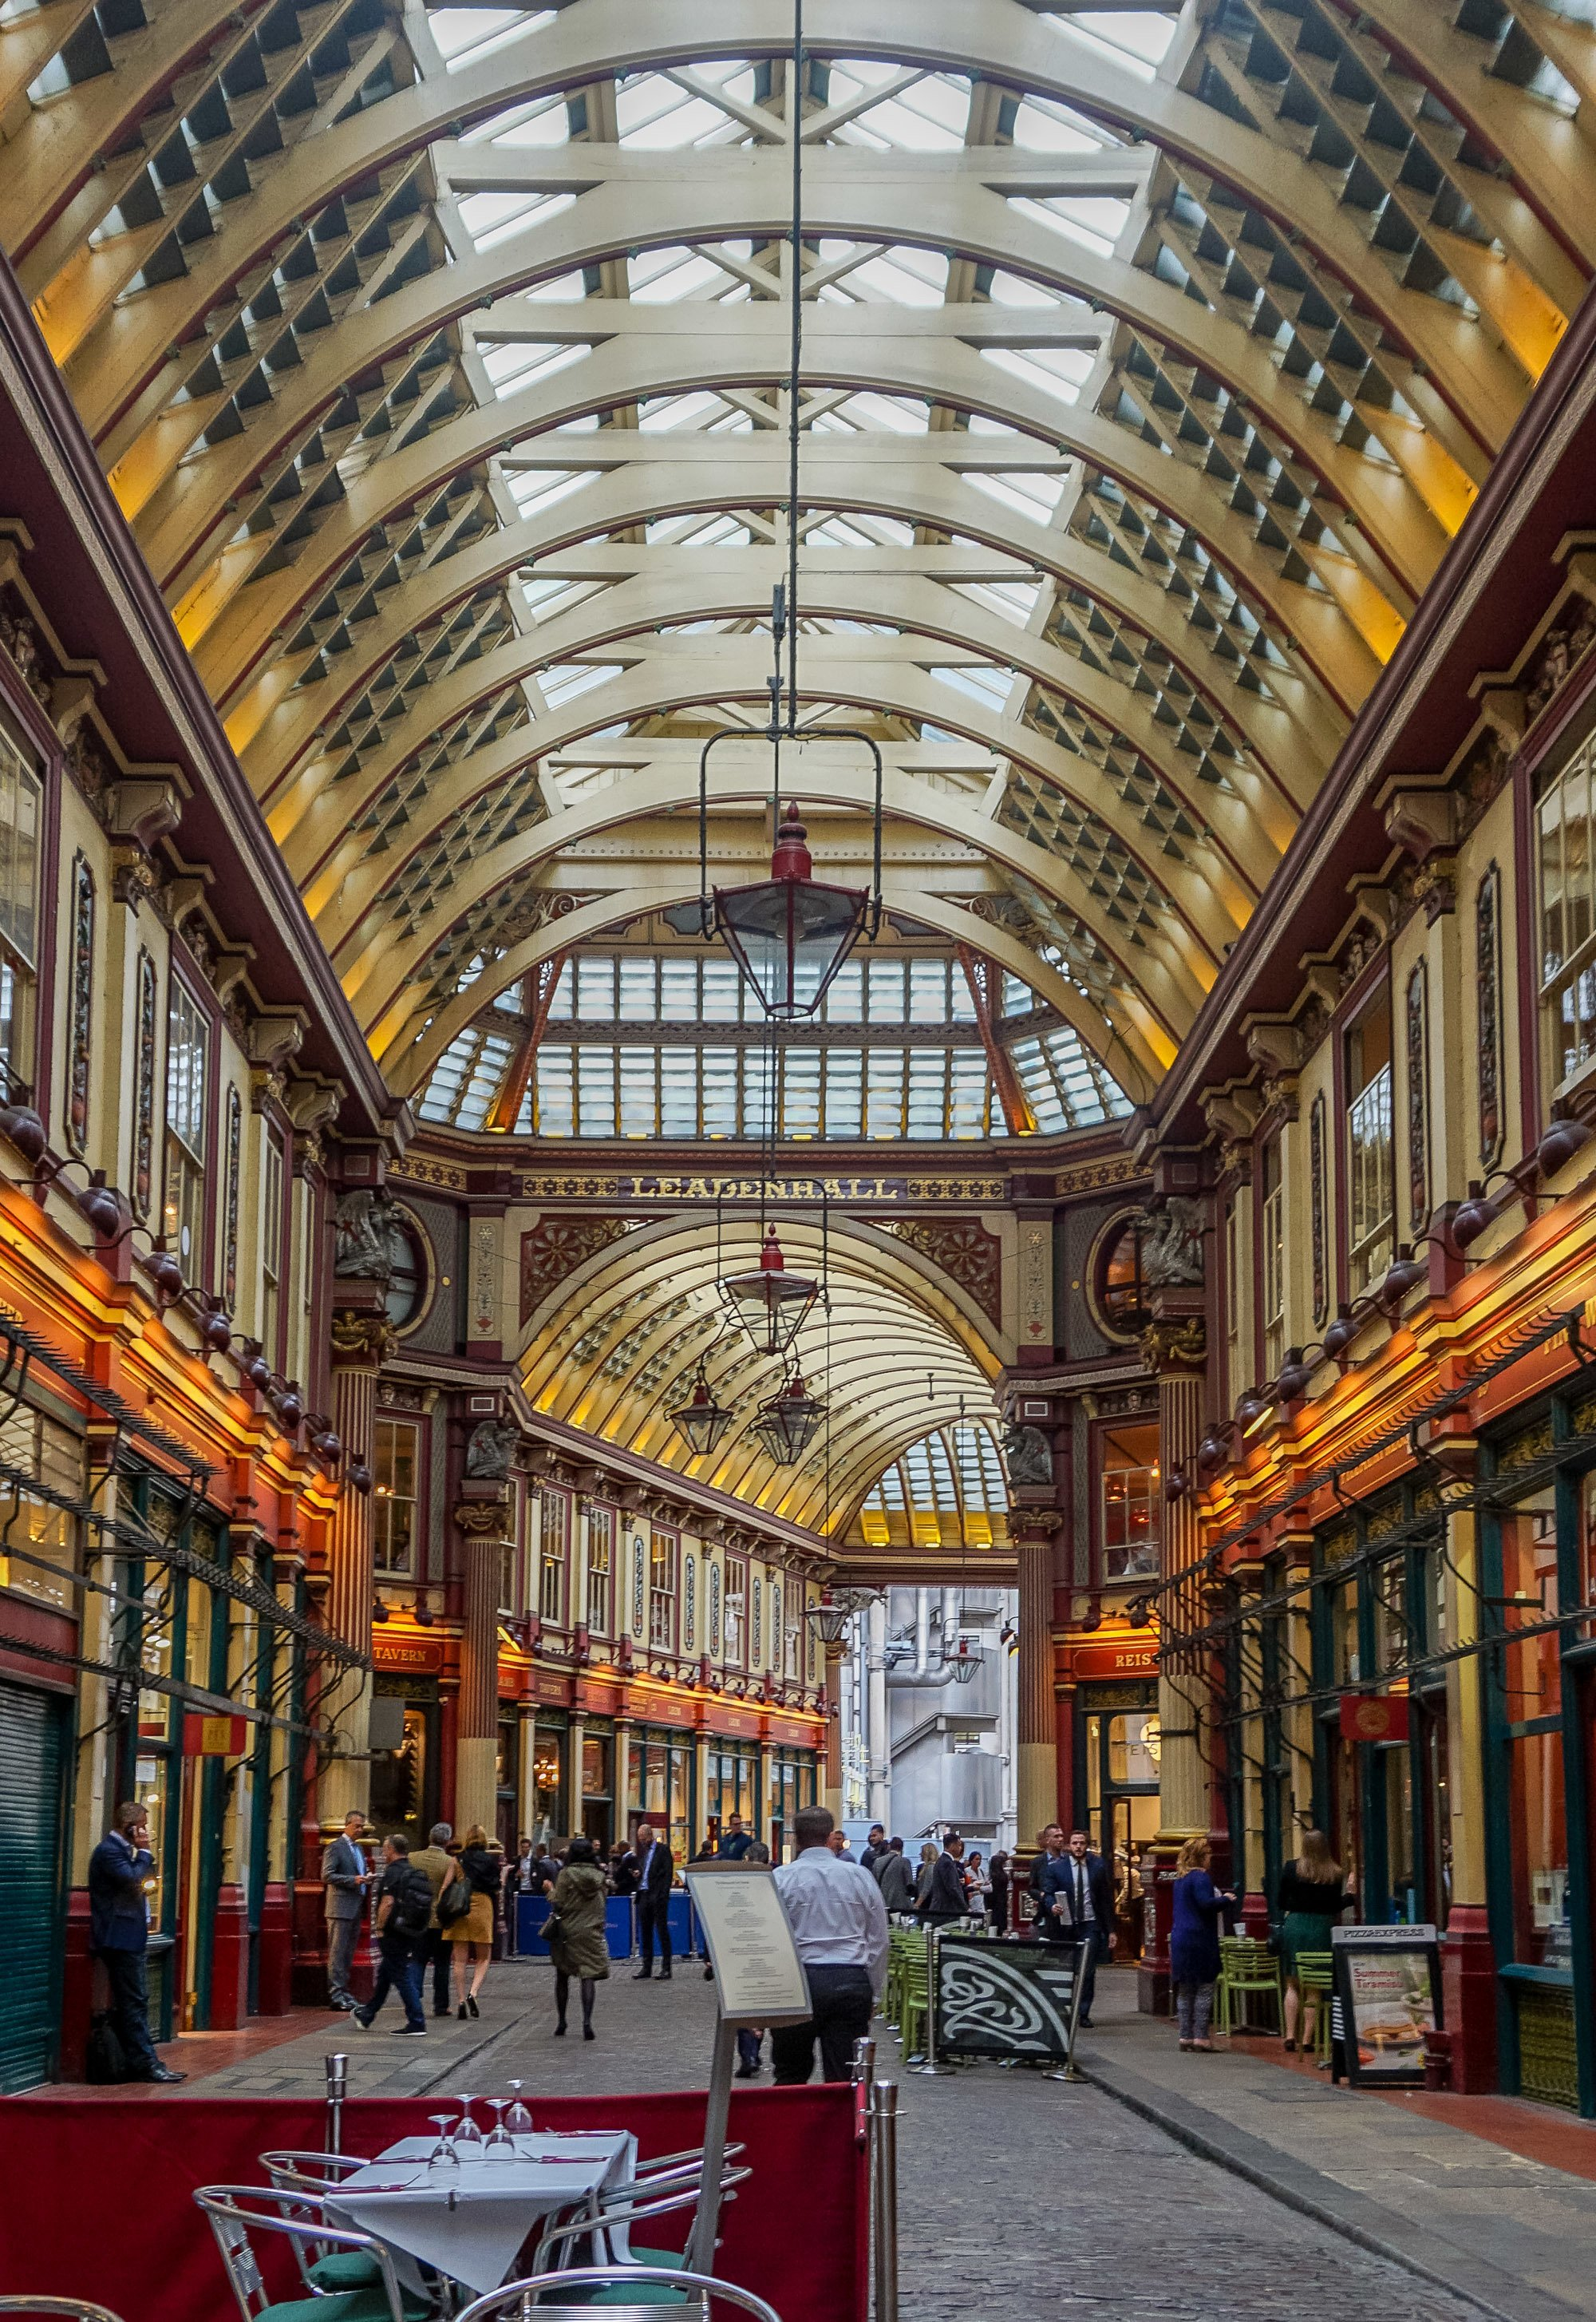 Leadenhall Market is a place to visit on a Harry Potter London tour. The entrance to the Leaky Cauldron is an optician's shop on the side of the market.